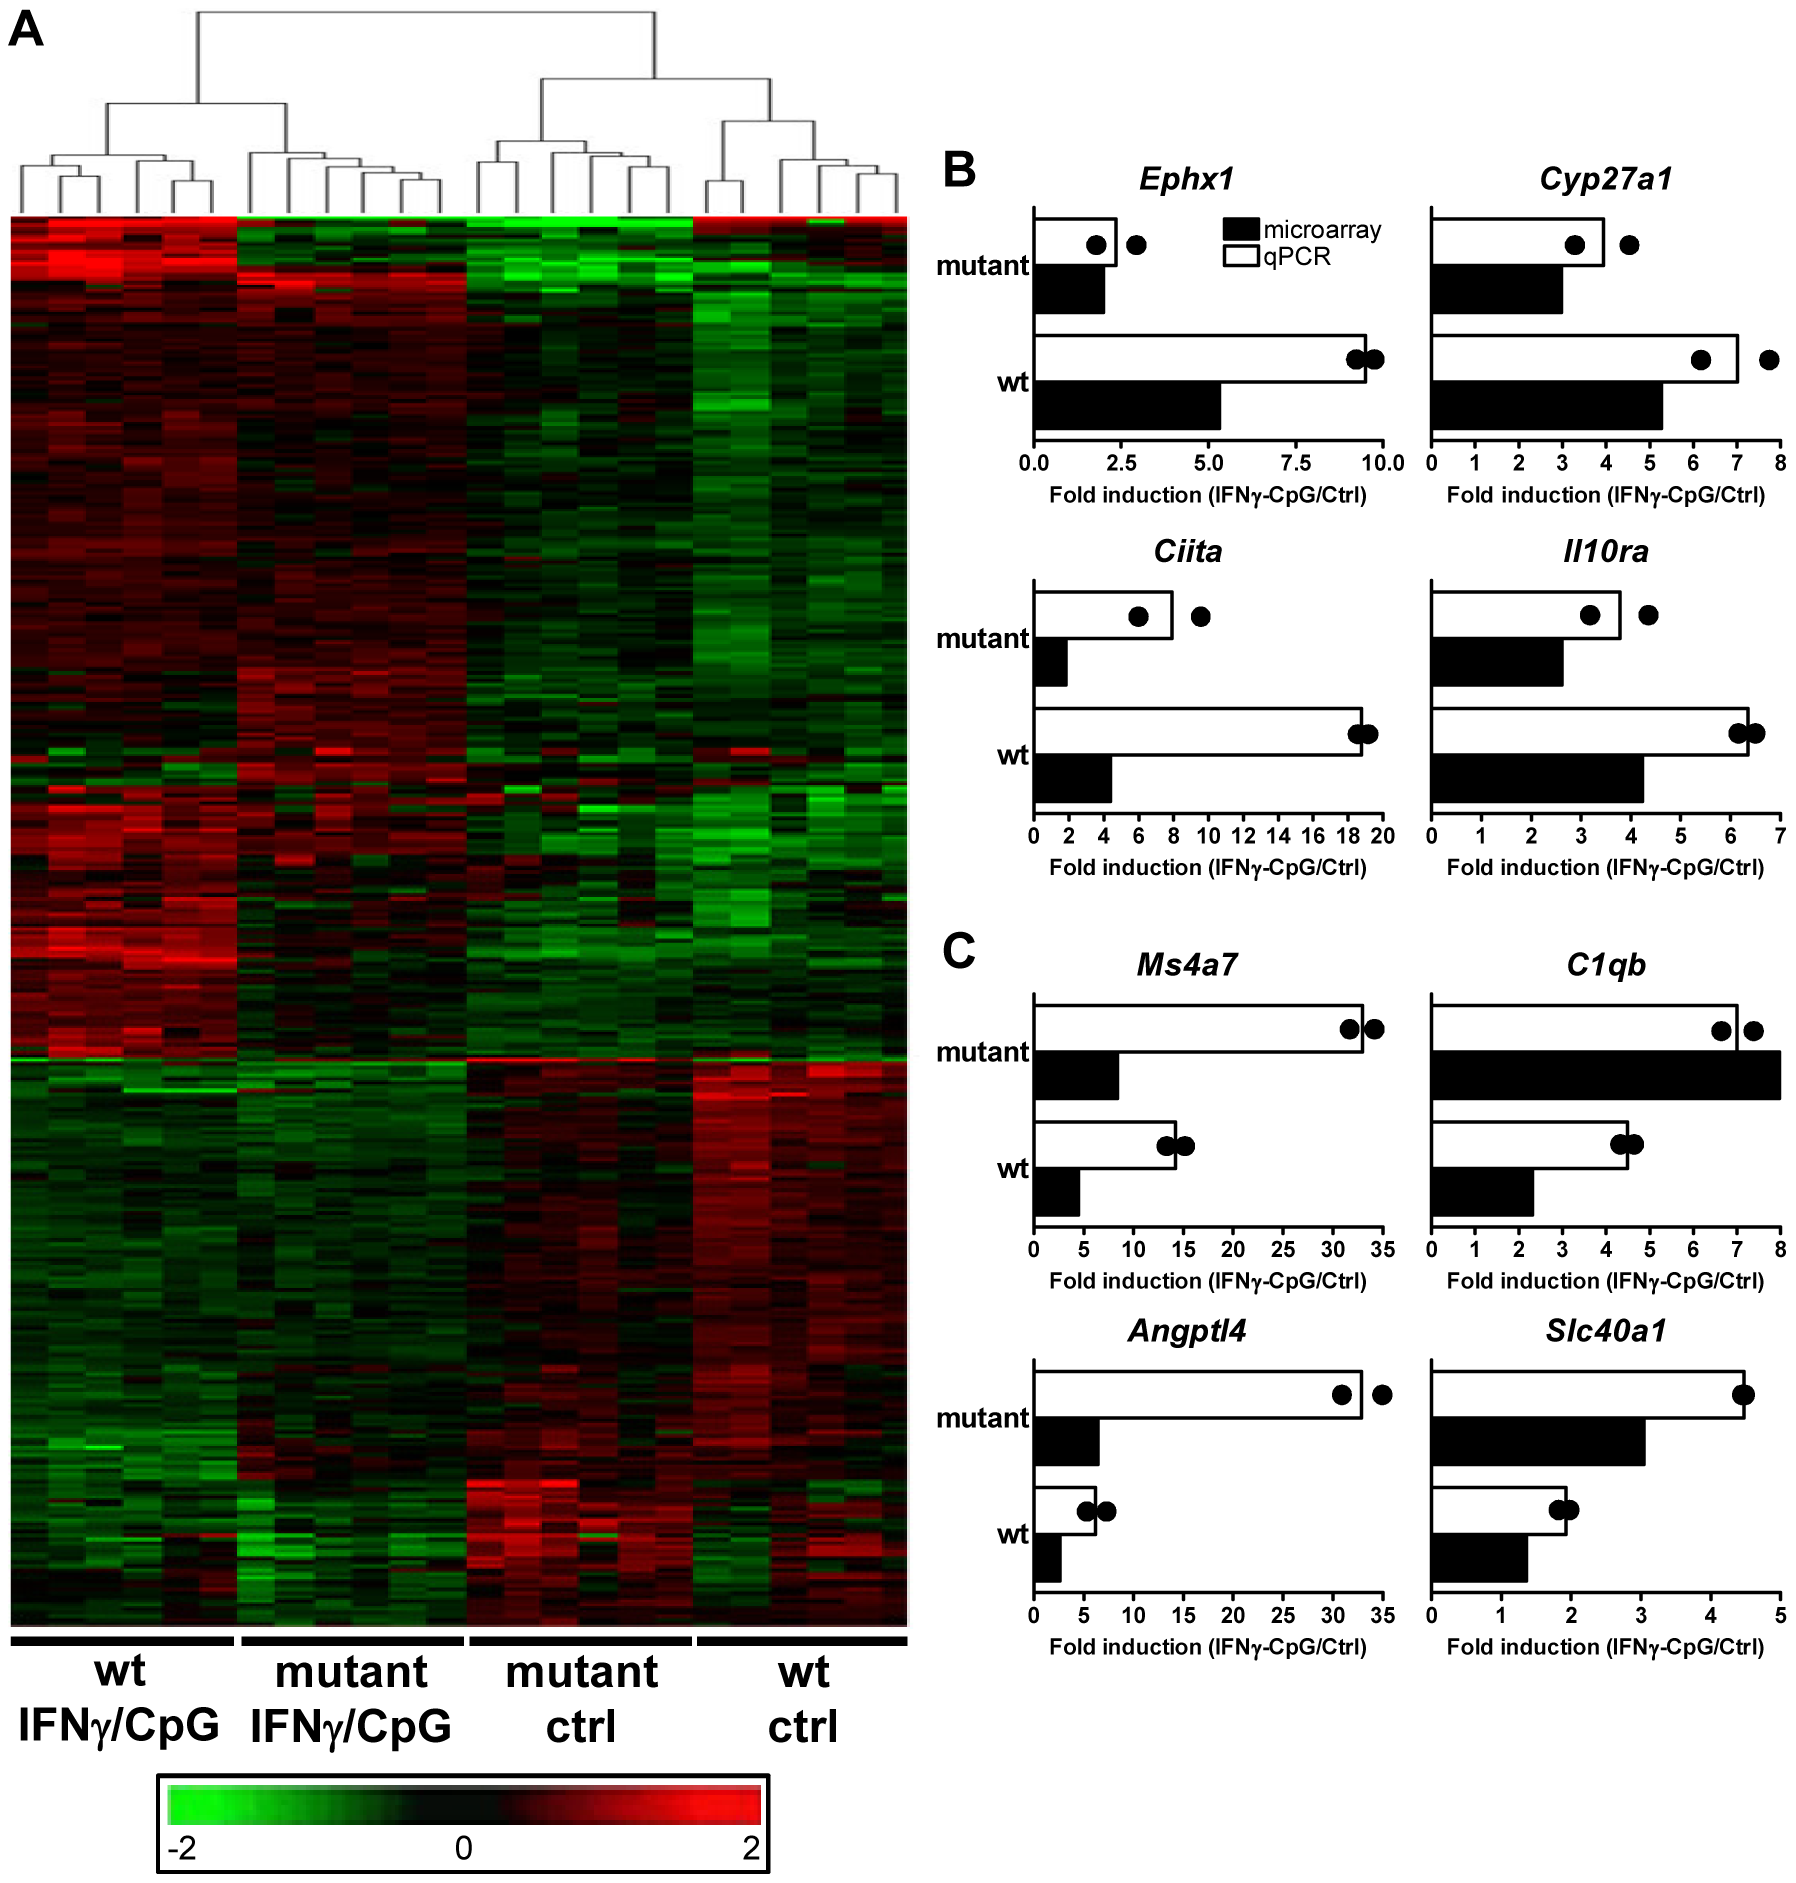 Transcriptional programs elicited by IFNγ/CpG exposure in wt and IRF8 mutant F2 mice.